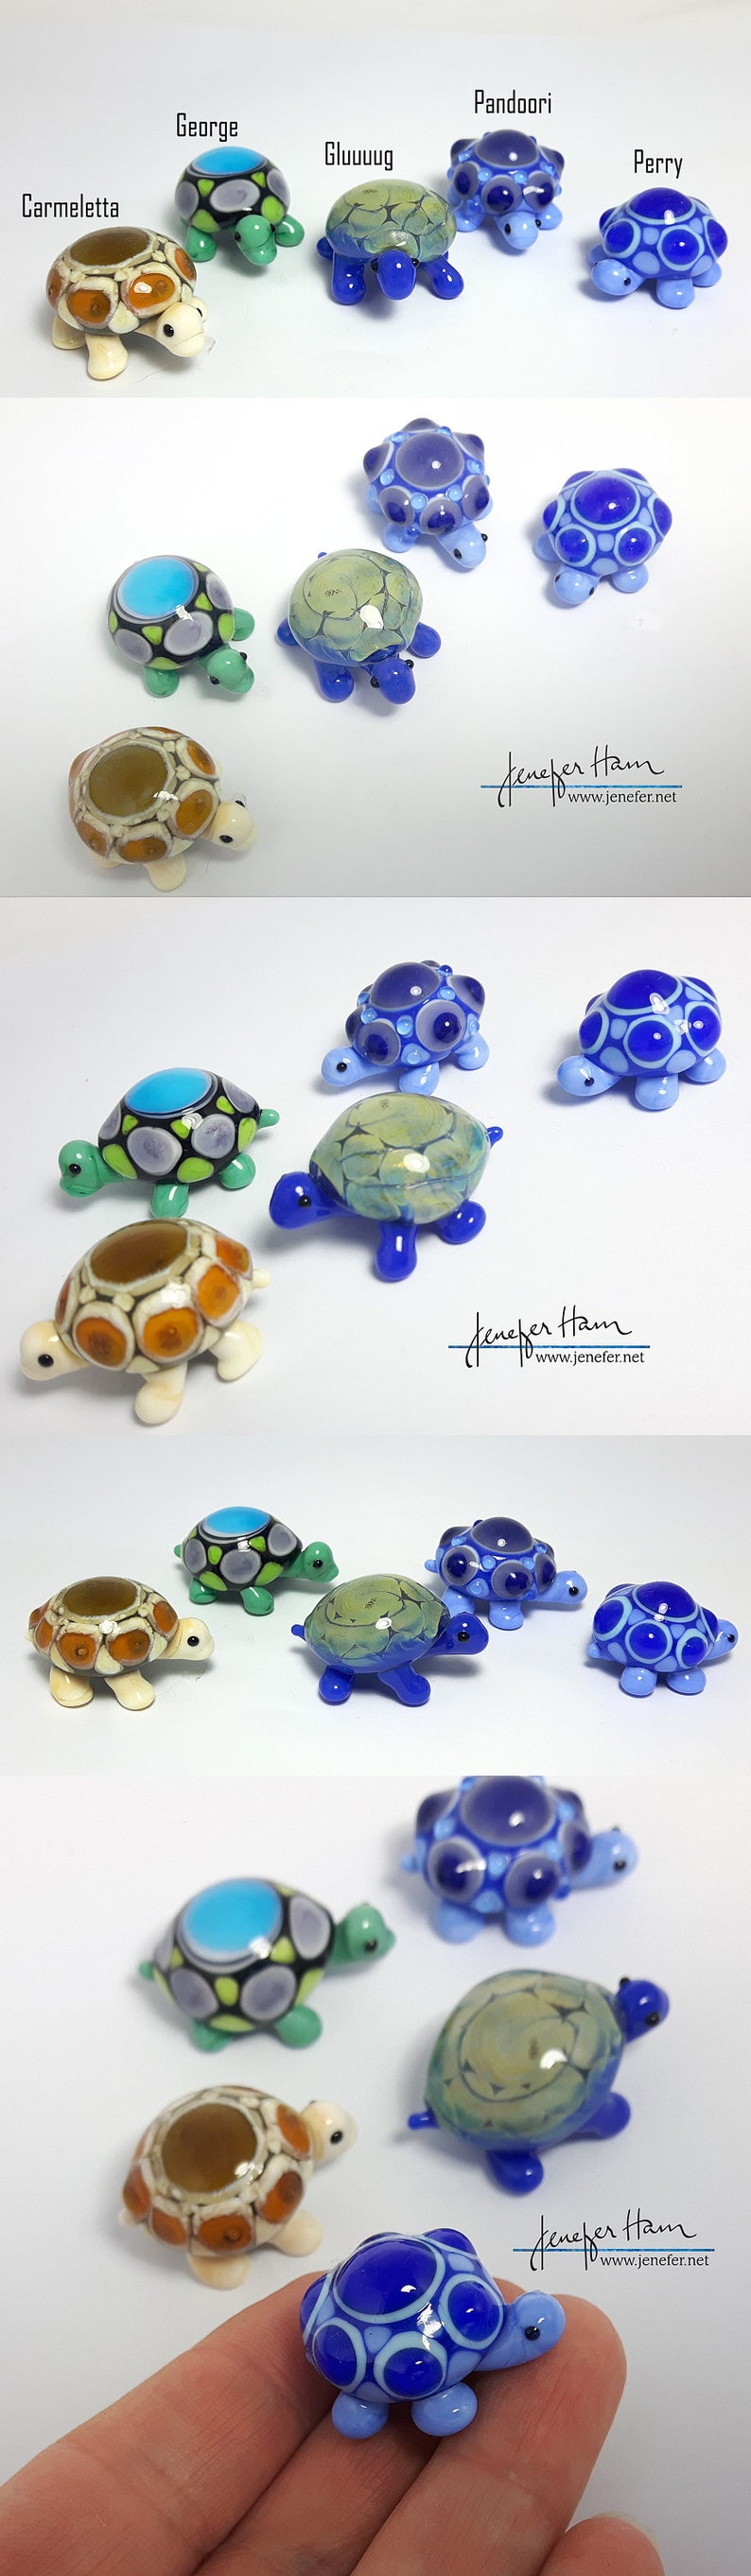 TURTLE Hand Made Glass Figurine Sculpture Board Game Player image 0